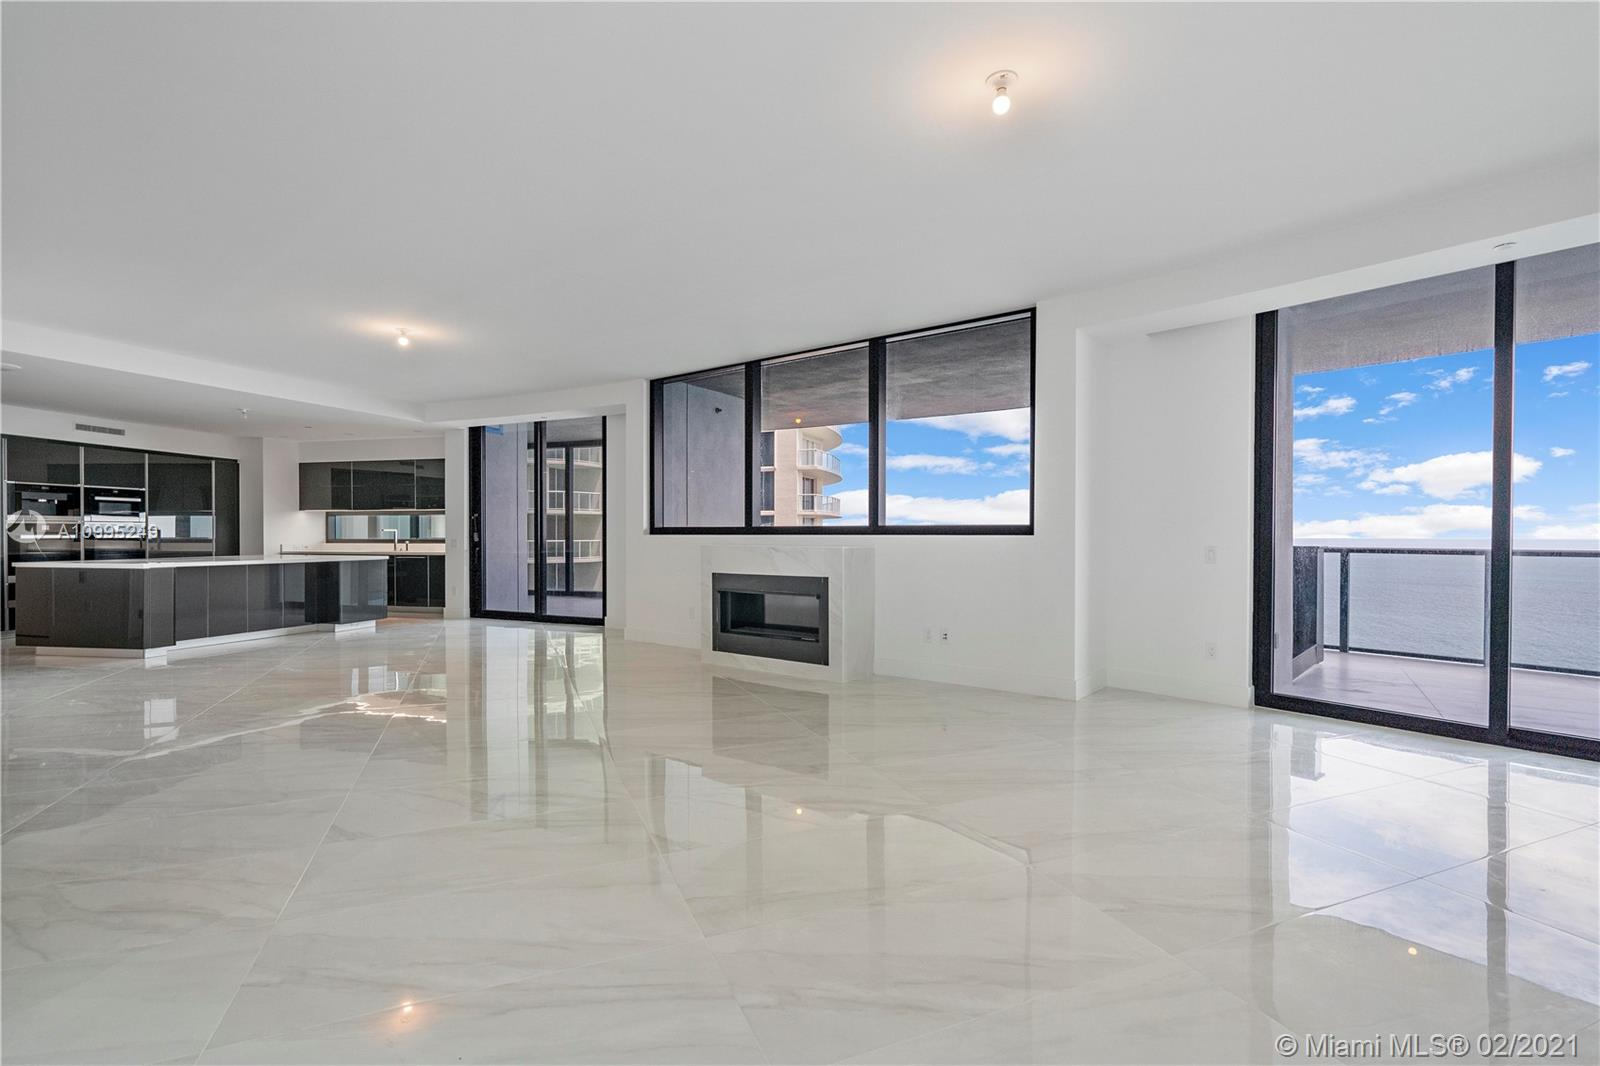 """""""Best Deal in the Best Line"""". Be the First to occupy this Magnificent Luxuriuos unit!. 4bed/3bath+1hbath+plus service room, 4.246 Sf Total area, Beautiful long glass allows you to enjoy the gorgeous front Ocean View, Terrace with Private Pool & summer kitchen, Two robotic Glass Car elevator will transport your vehicle to your Privet Garage in the Sky. Natural light throughout your entire home. Top of the line Appliances, Black Carbon Kitchen Cabinets, 5 Star Amenities Pool & Beach Service, Spa & Fitness, Club Room & Movie Theater, Virtual Gold & Race Car Simulator, Private Restaurant & Wine Room, Lounge/Bar with Fireplace, Concierge & 24 Security. (Appoinments 24 hours before, according to managemente protocol)"""